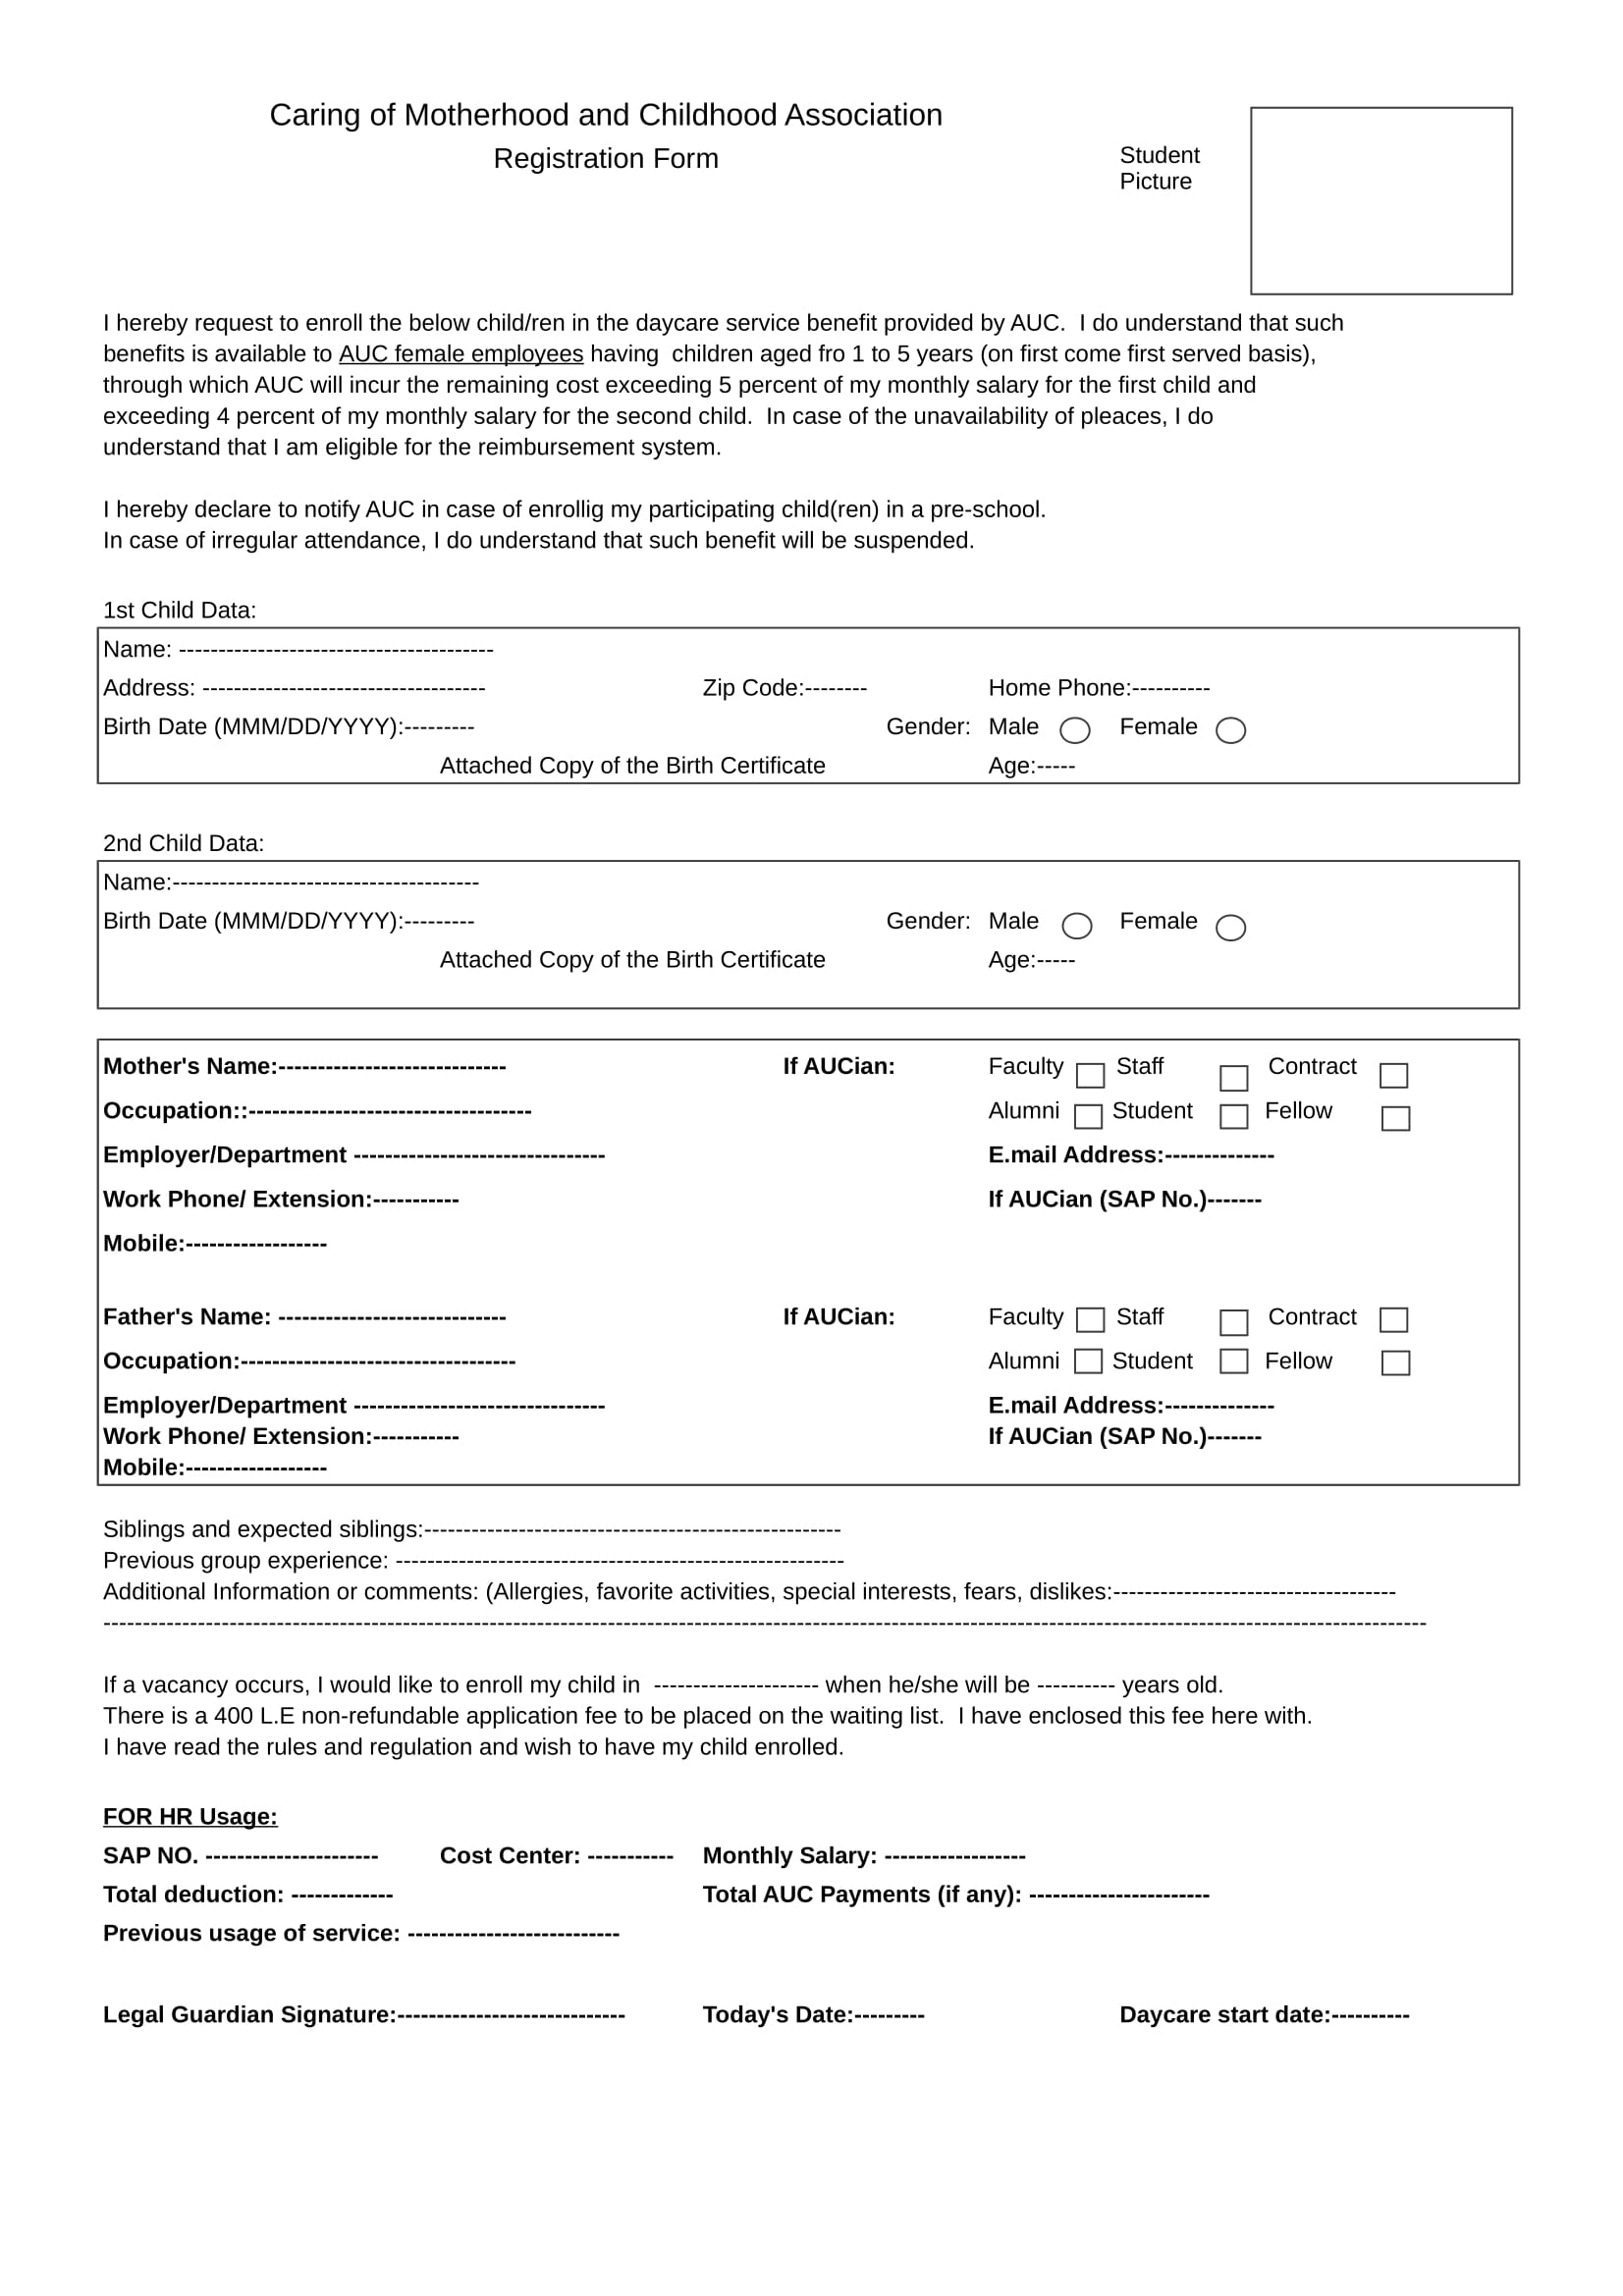 daycare waiting list registration form in xls 1